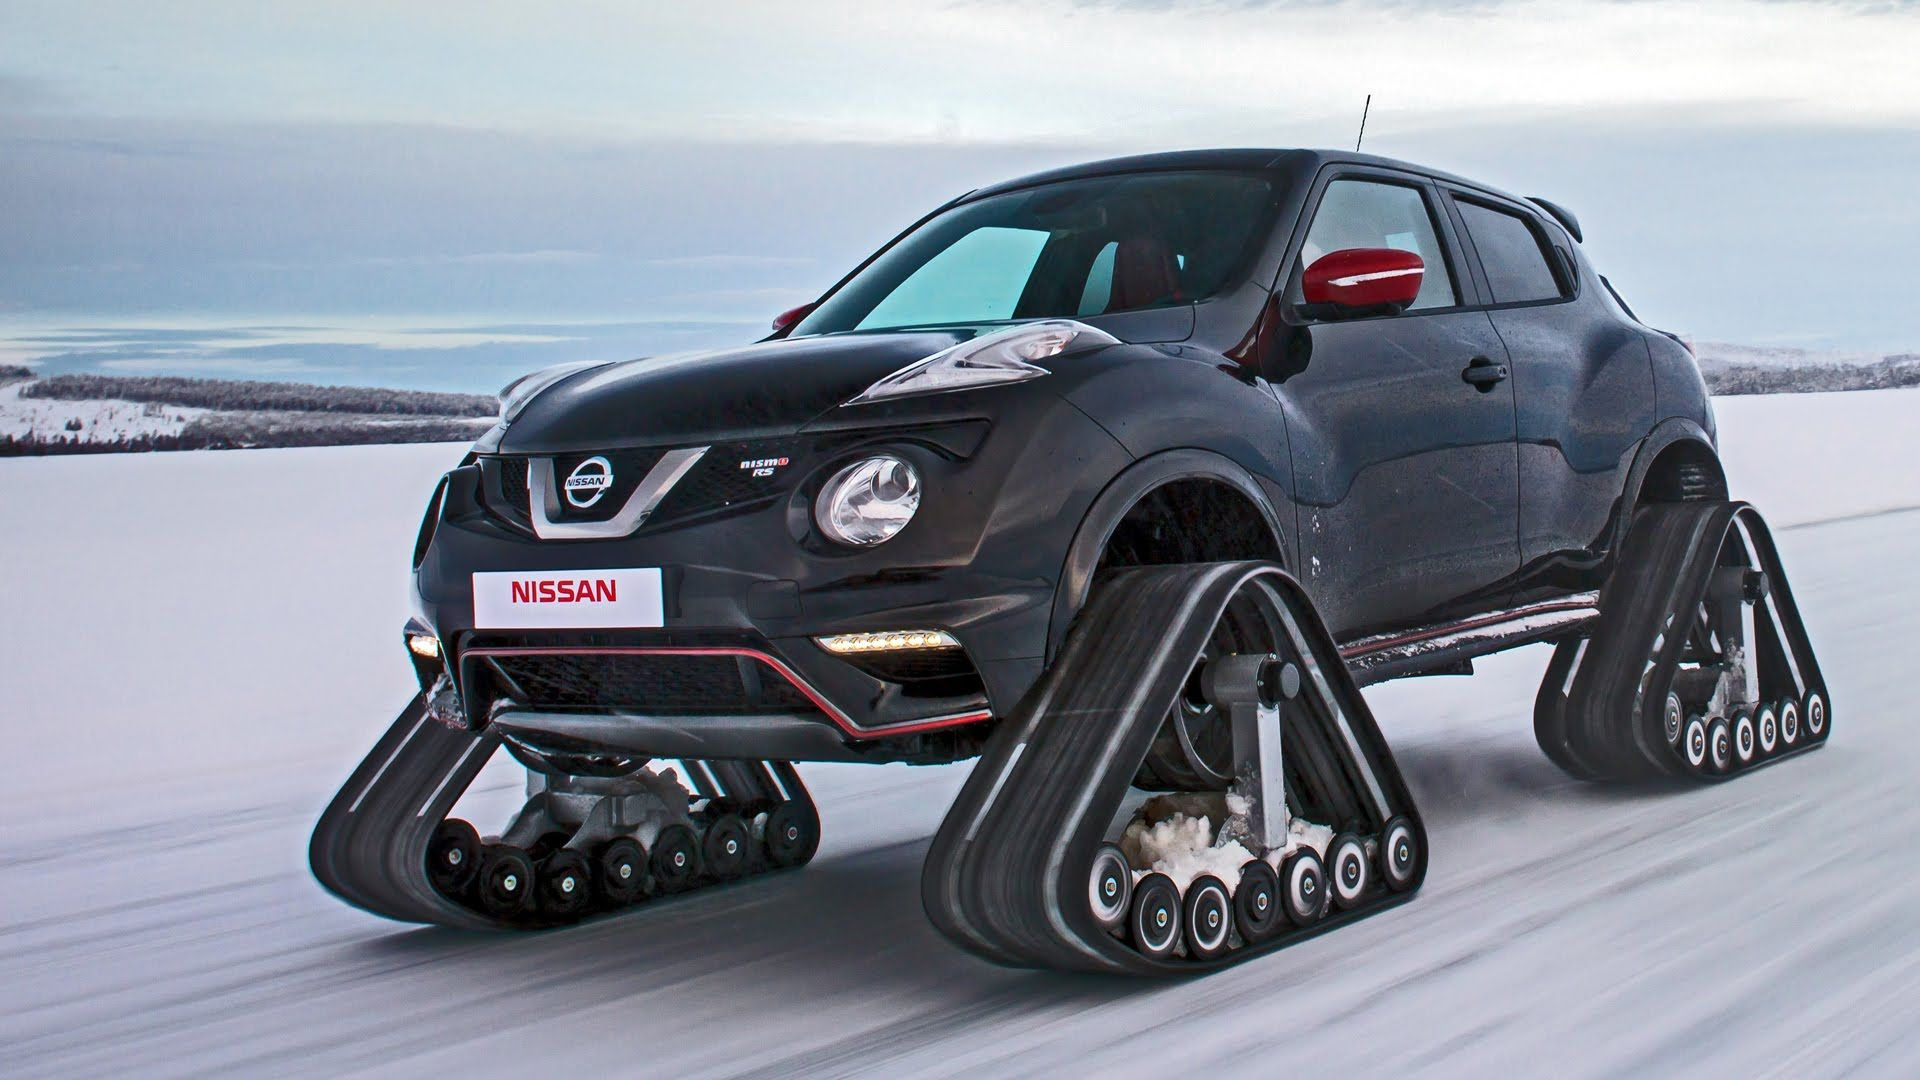 Worksheet. Nissan Juke NISMO RSnow  YouTube  Nismo fever  Pinterest